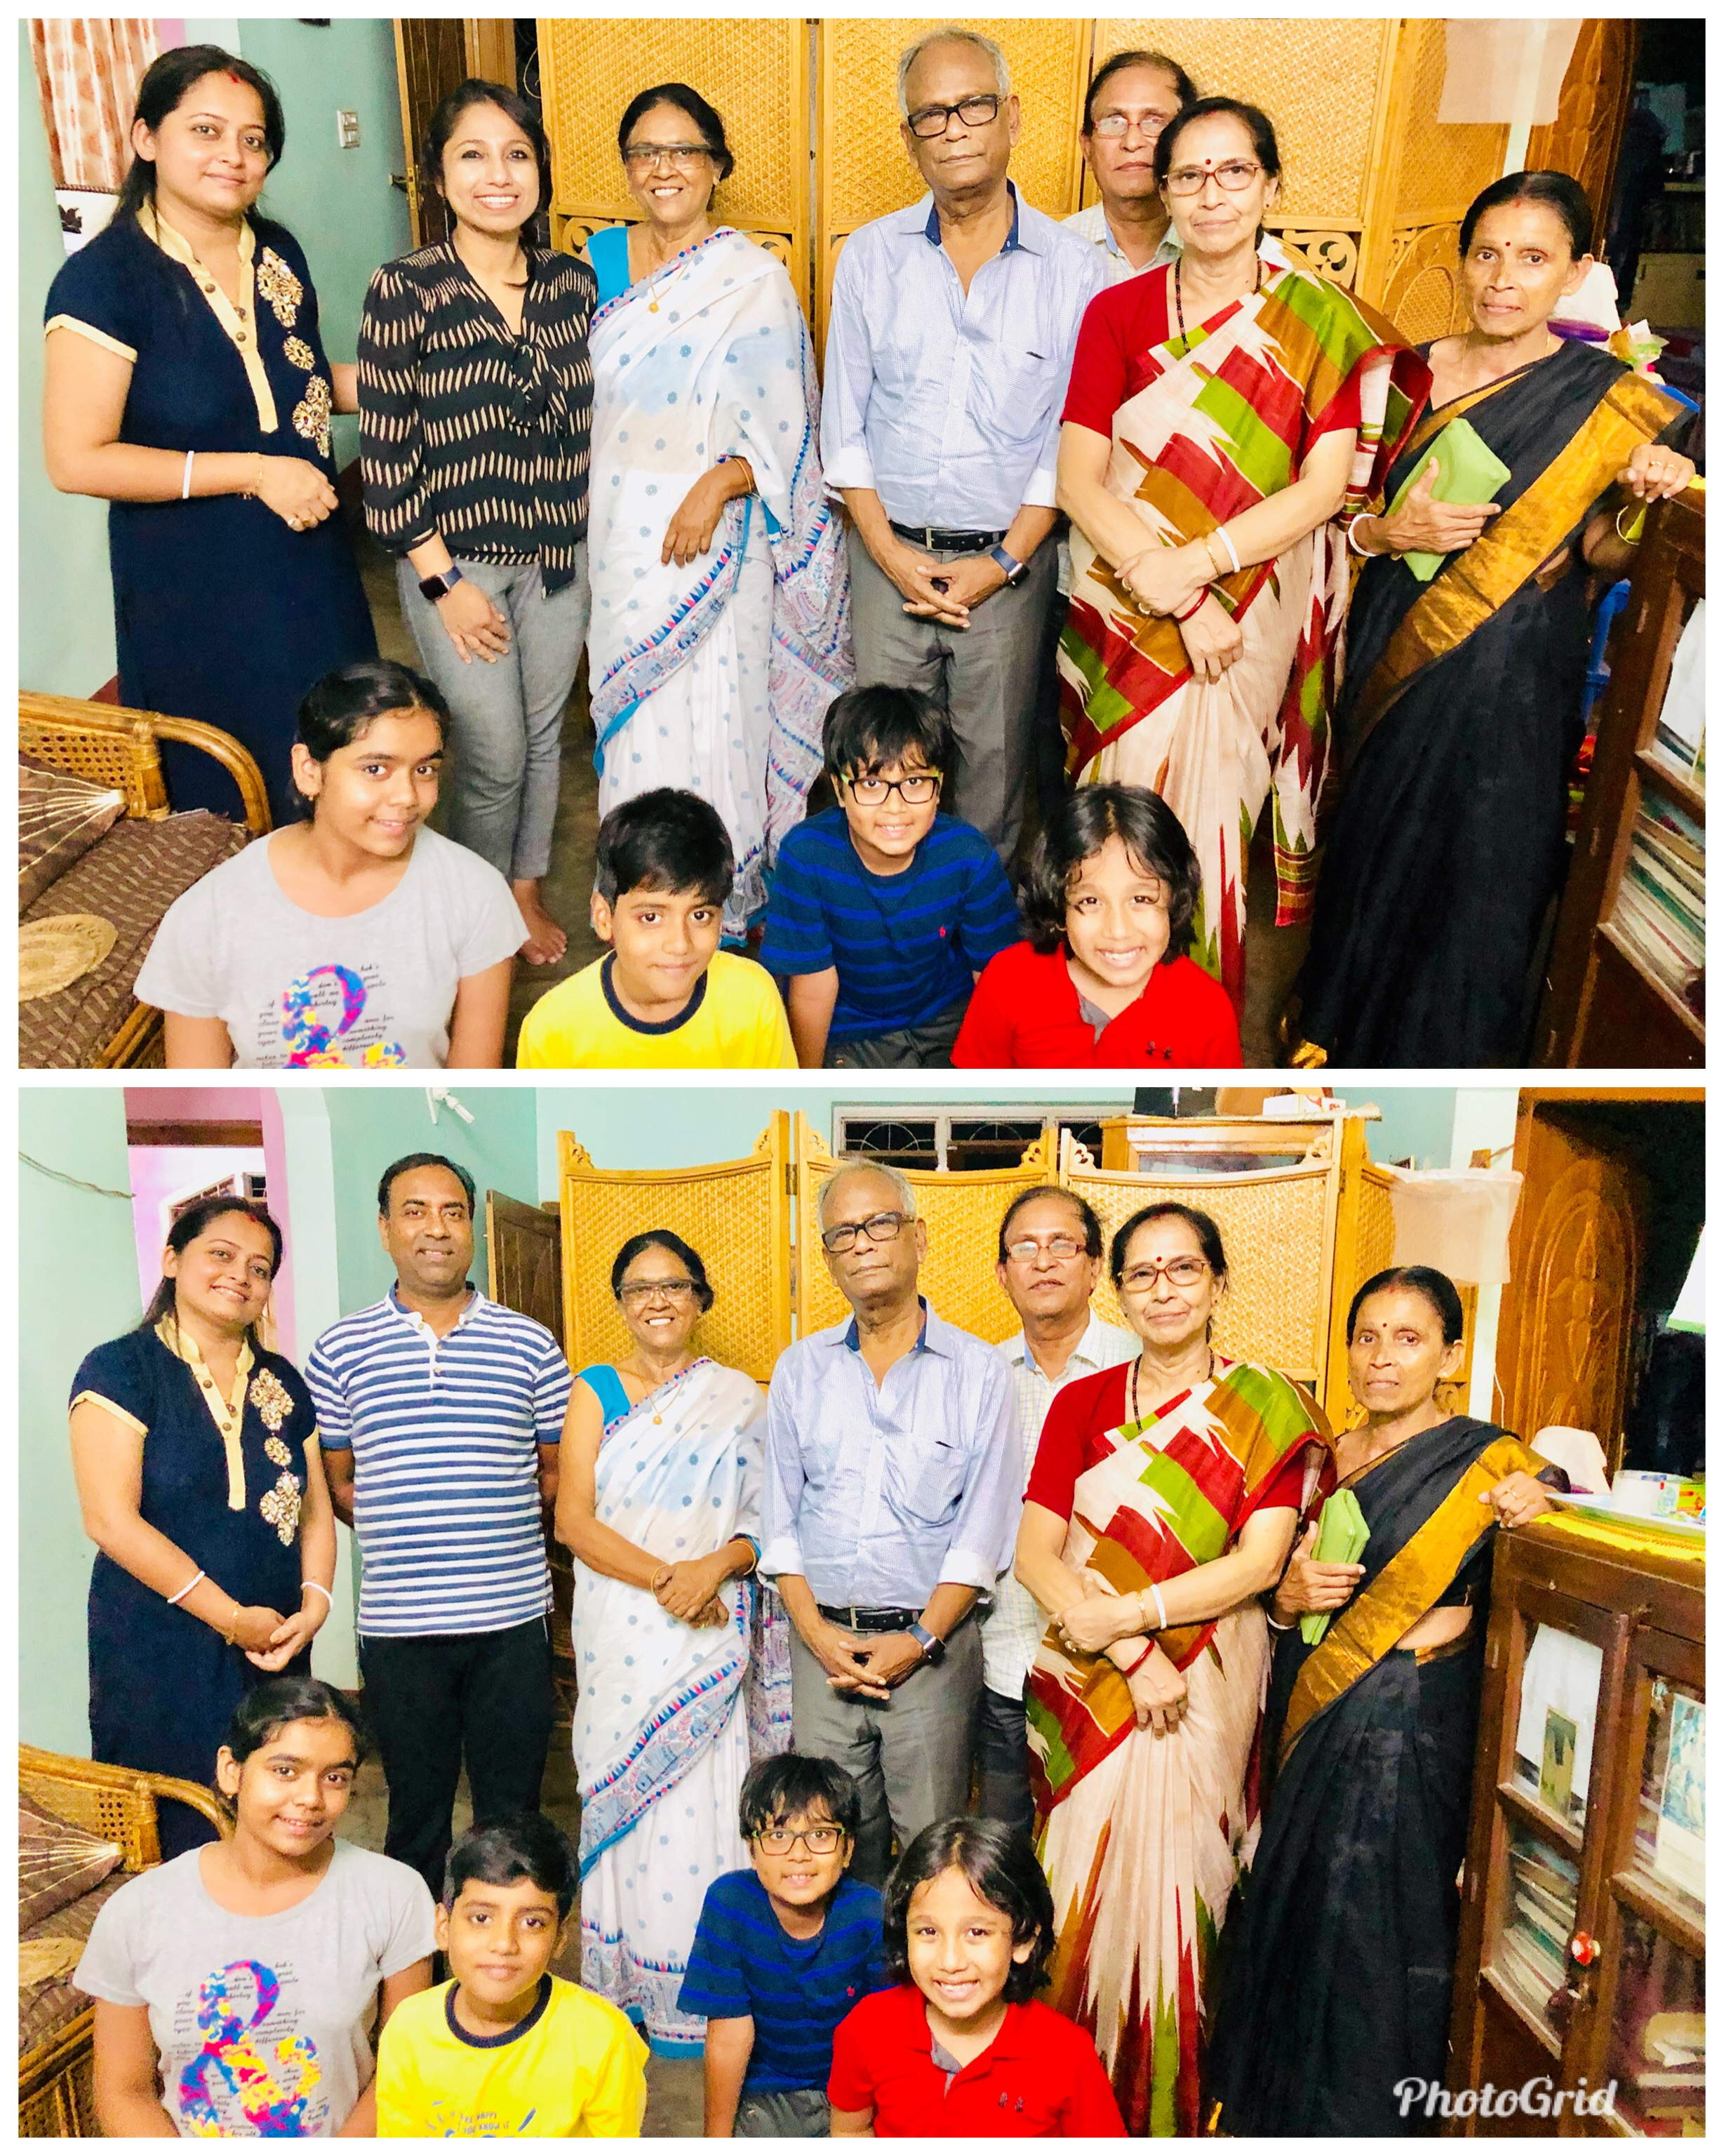 I am sincerely thankful to Mrs. Shibani Brahmachari, Mrs. Tomali Brahmachari and Mr. Rajarshi Brahmachari for their warmth and affection. L to R bottom picture: Mrs. Tomali Brahmachari, Mr. Rajarshi Brahmachari, Mrs. Shibani) Bharmachari; Dr. C. S Das, Mr. K.S Das, Mrs. Rita Das and Mrs. Krishna Das